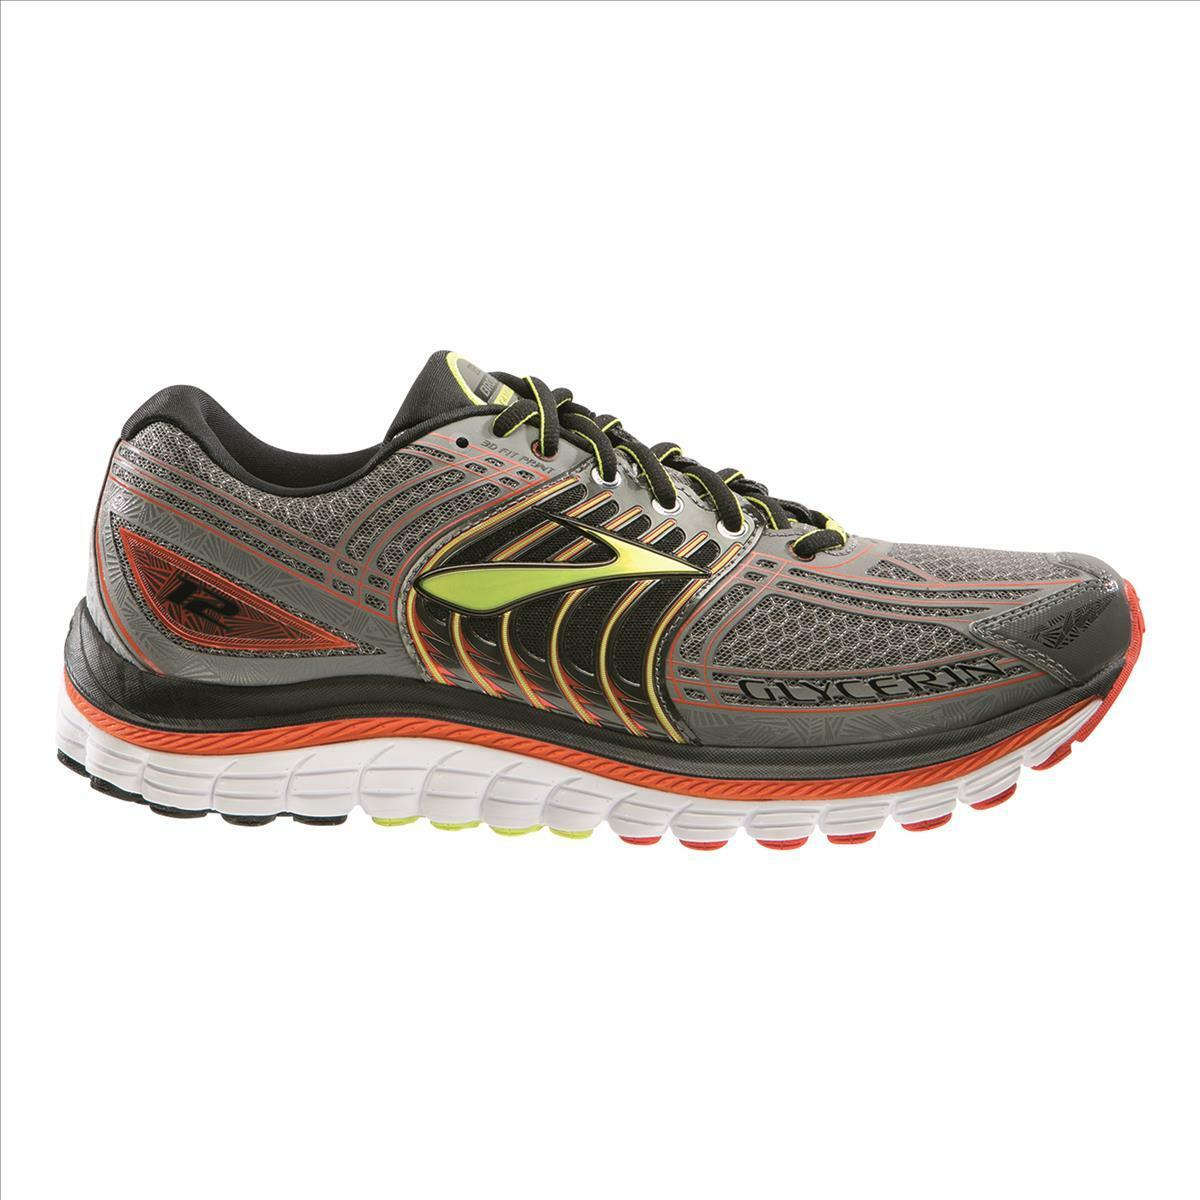 Brooks Glycerin 12 Mens Runner (D) (024)  + Free Aus Delivery